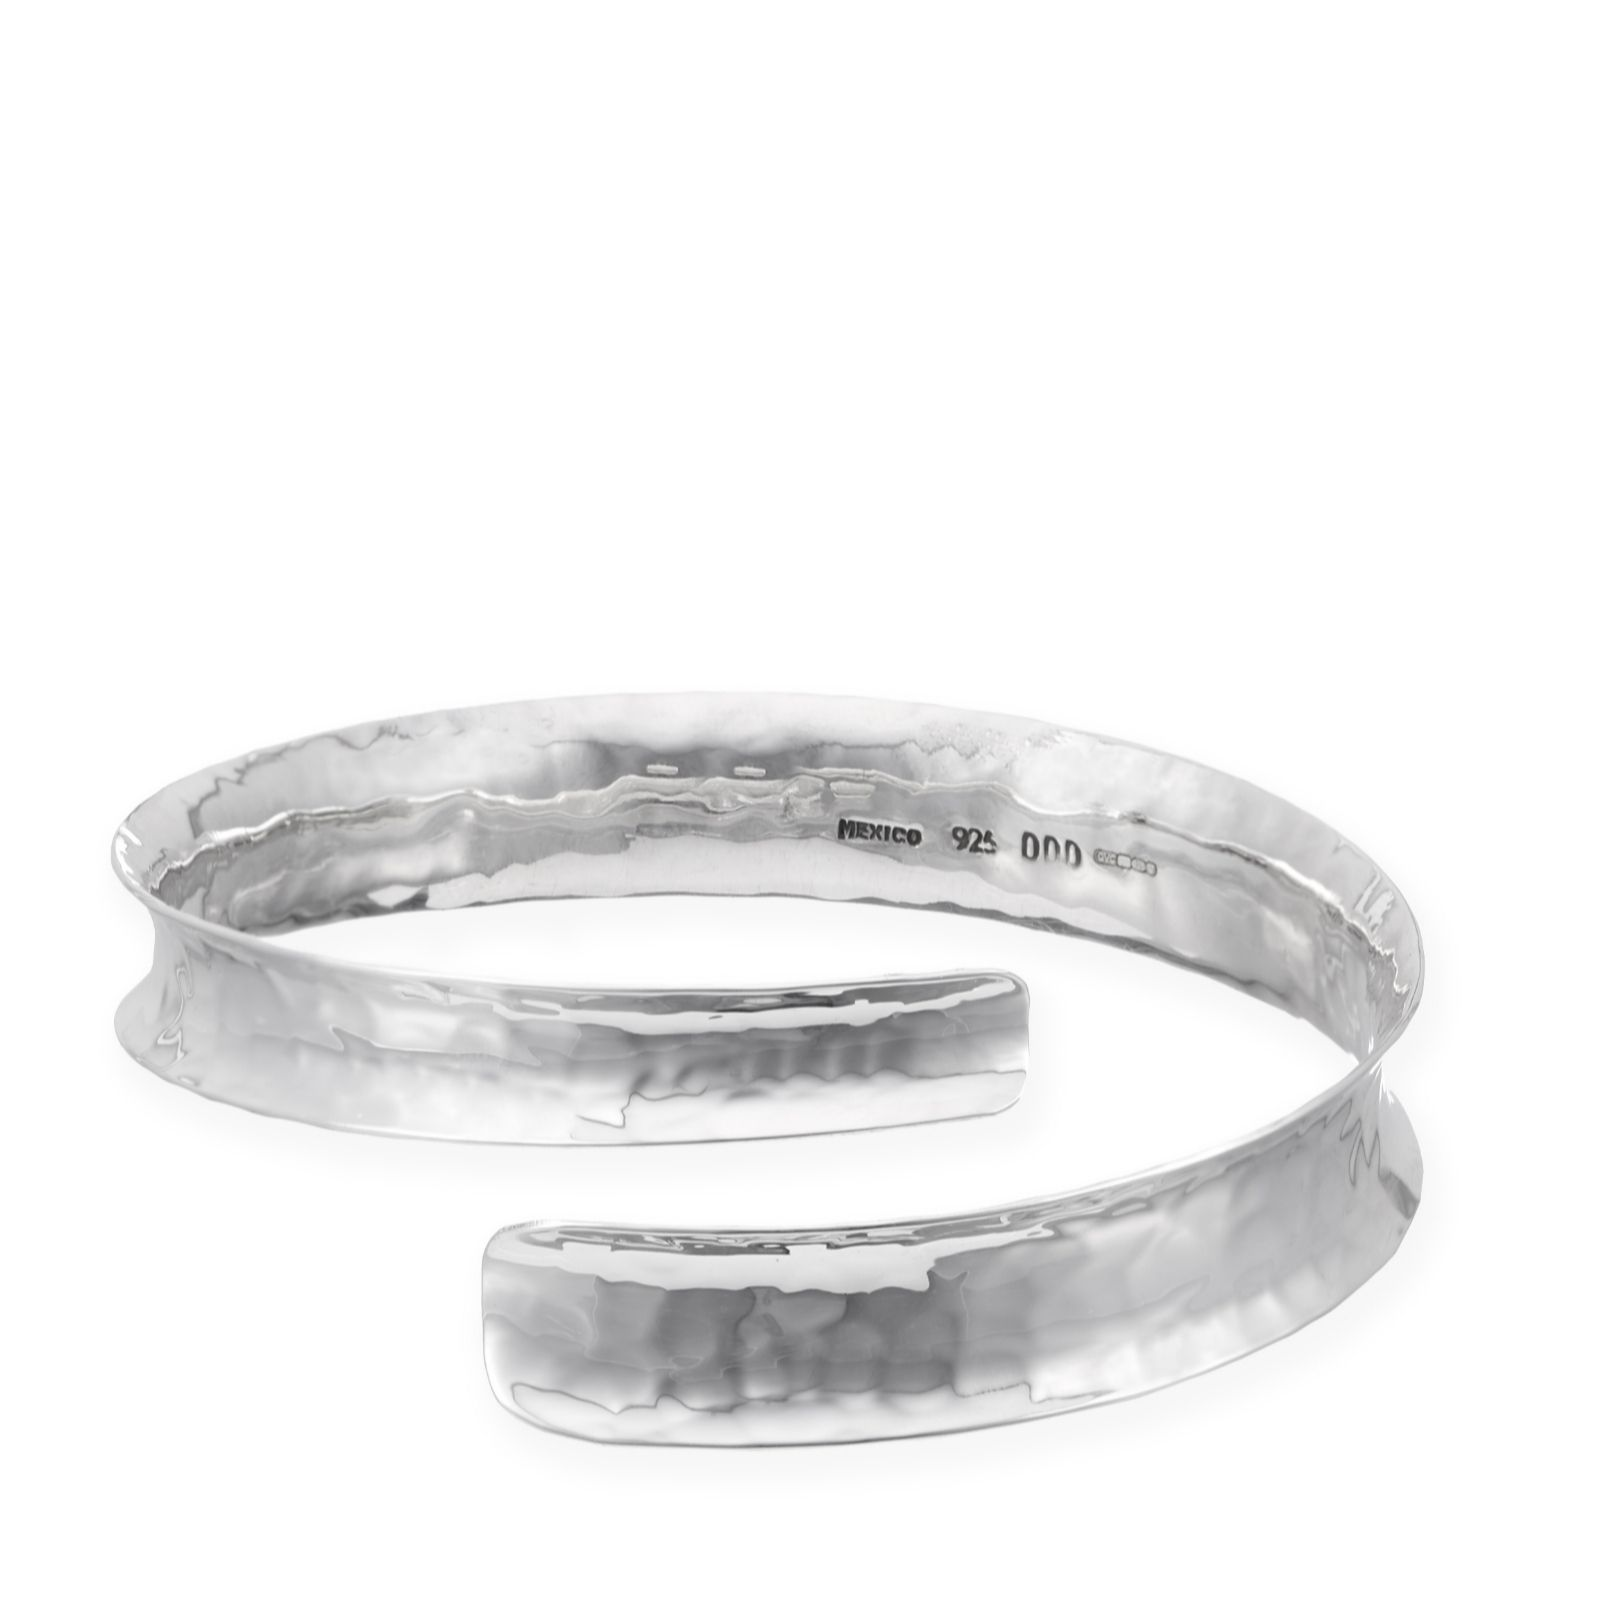 6498b29bc Taxco Traditions Entwined Bangle Sterling Silver - Page 1 - QVC UK